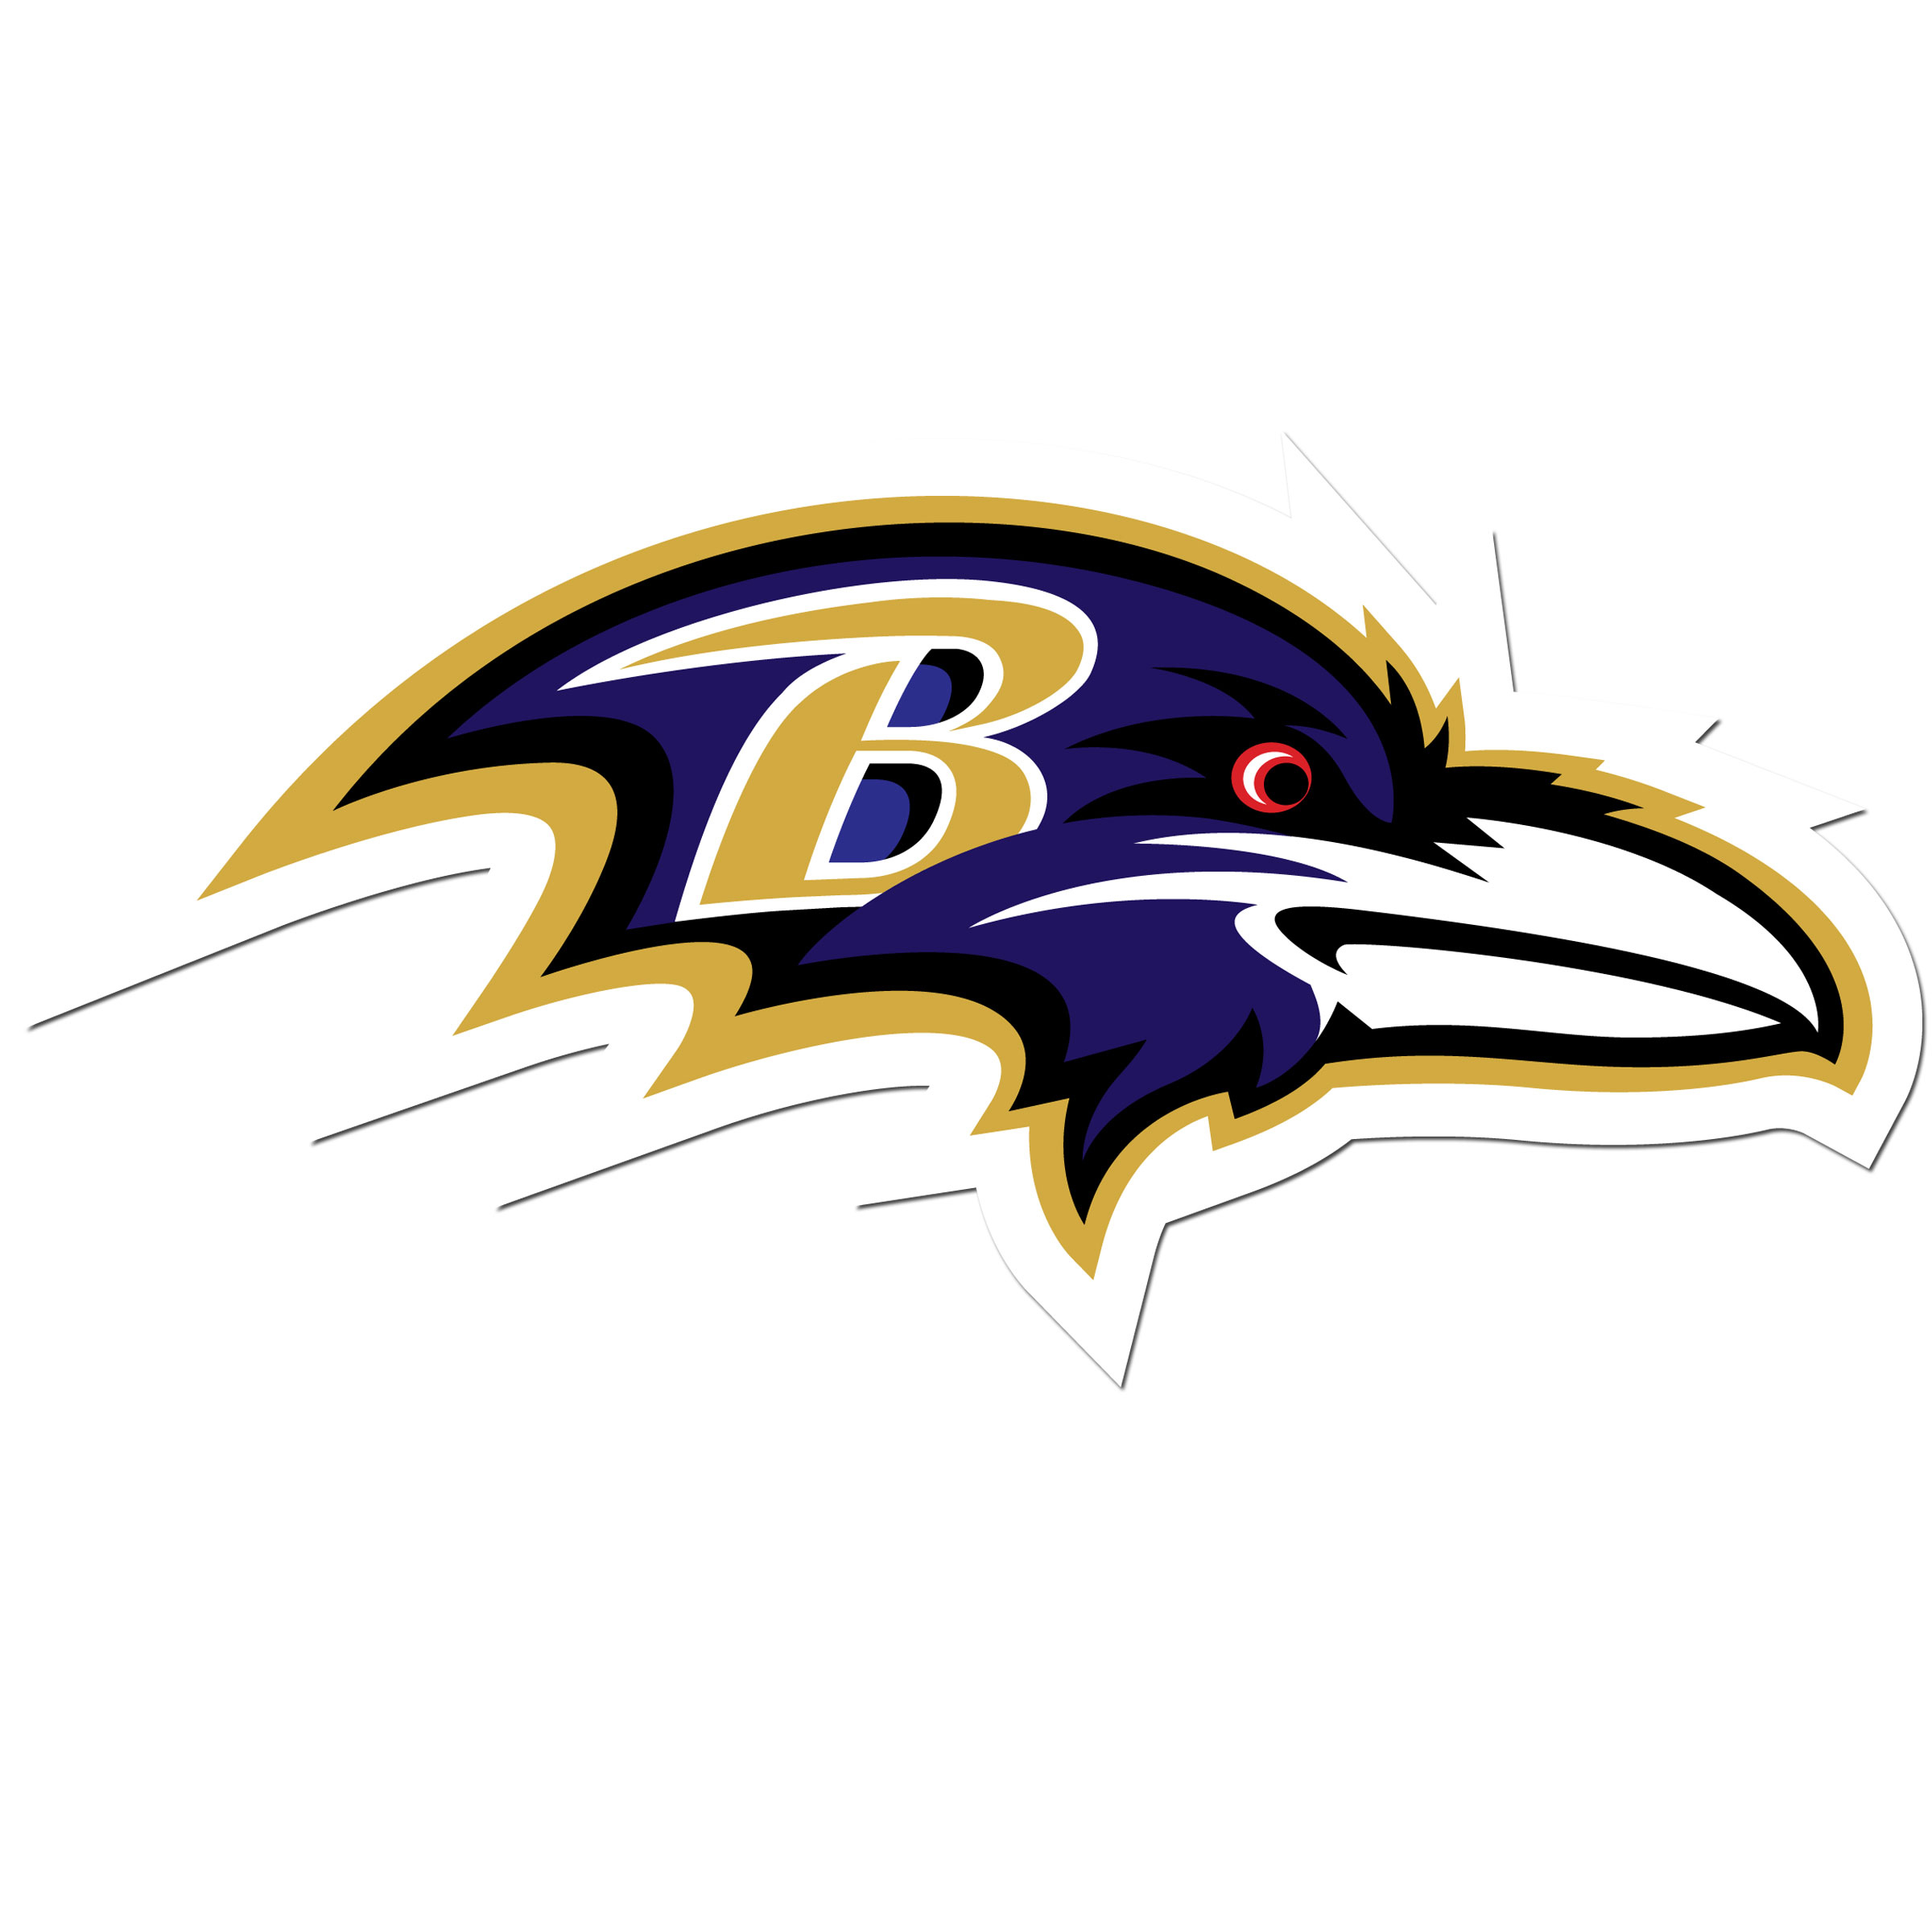 Baltimore Ravens 8 inch Auto Decal - This bold, 8 inch Baltimore Ravens is a great way to show off your team pride! The low tack vinyl decal is easily positioned and adjusted to make sure you get that logo in just the right spot on your vehicle. Designed to be used on the outside of the window.